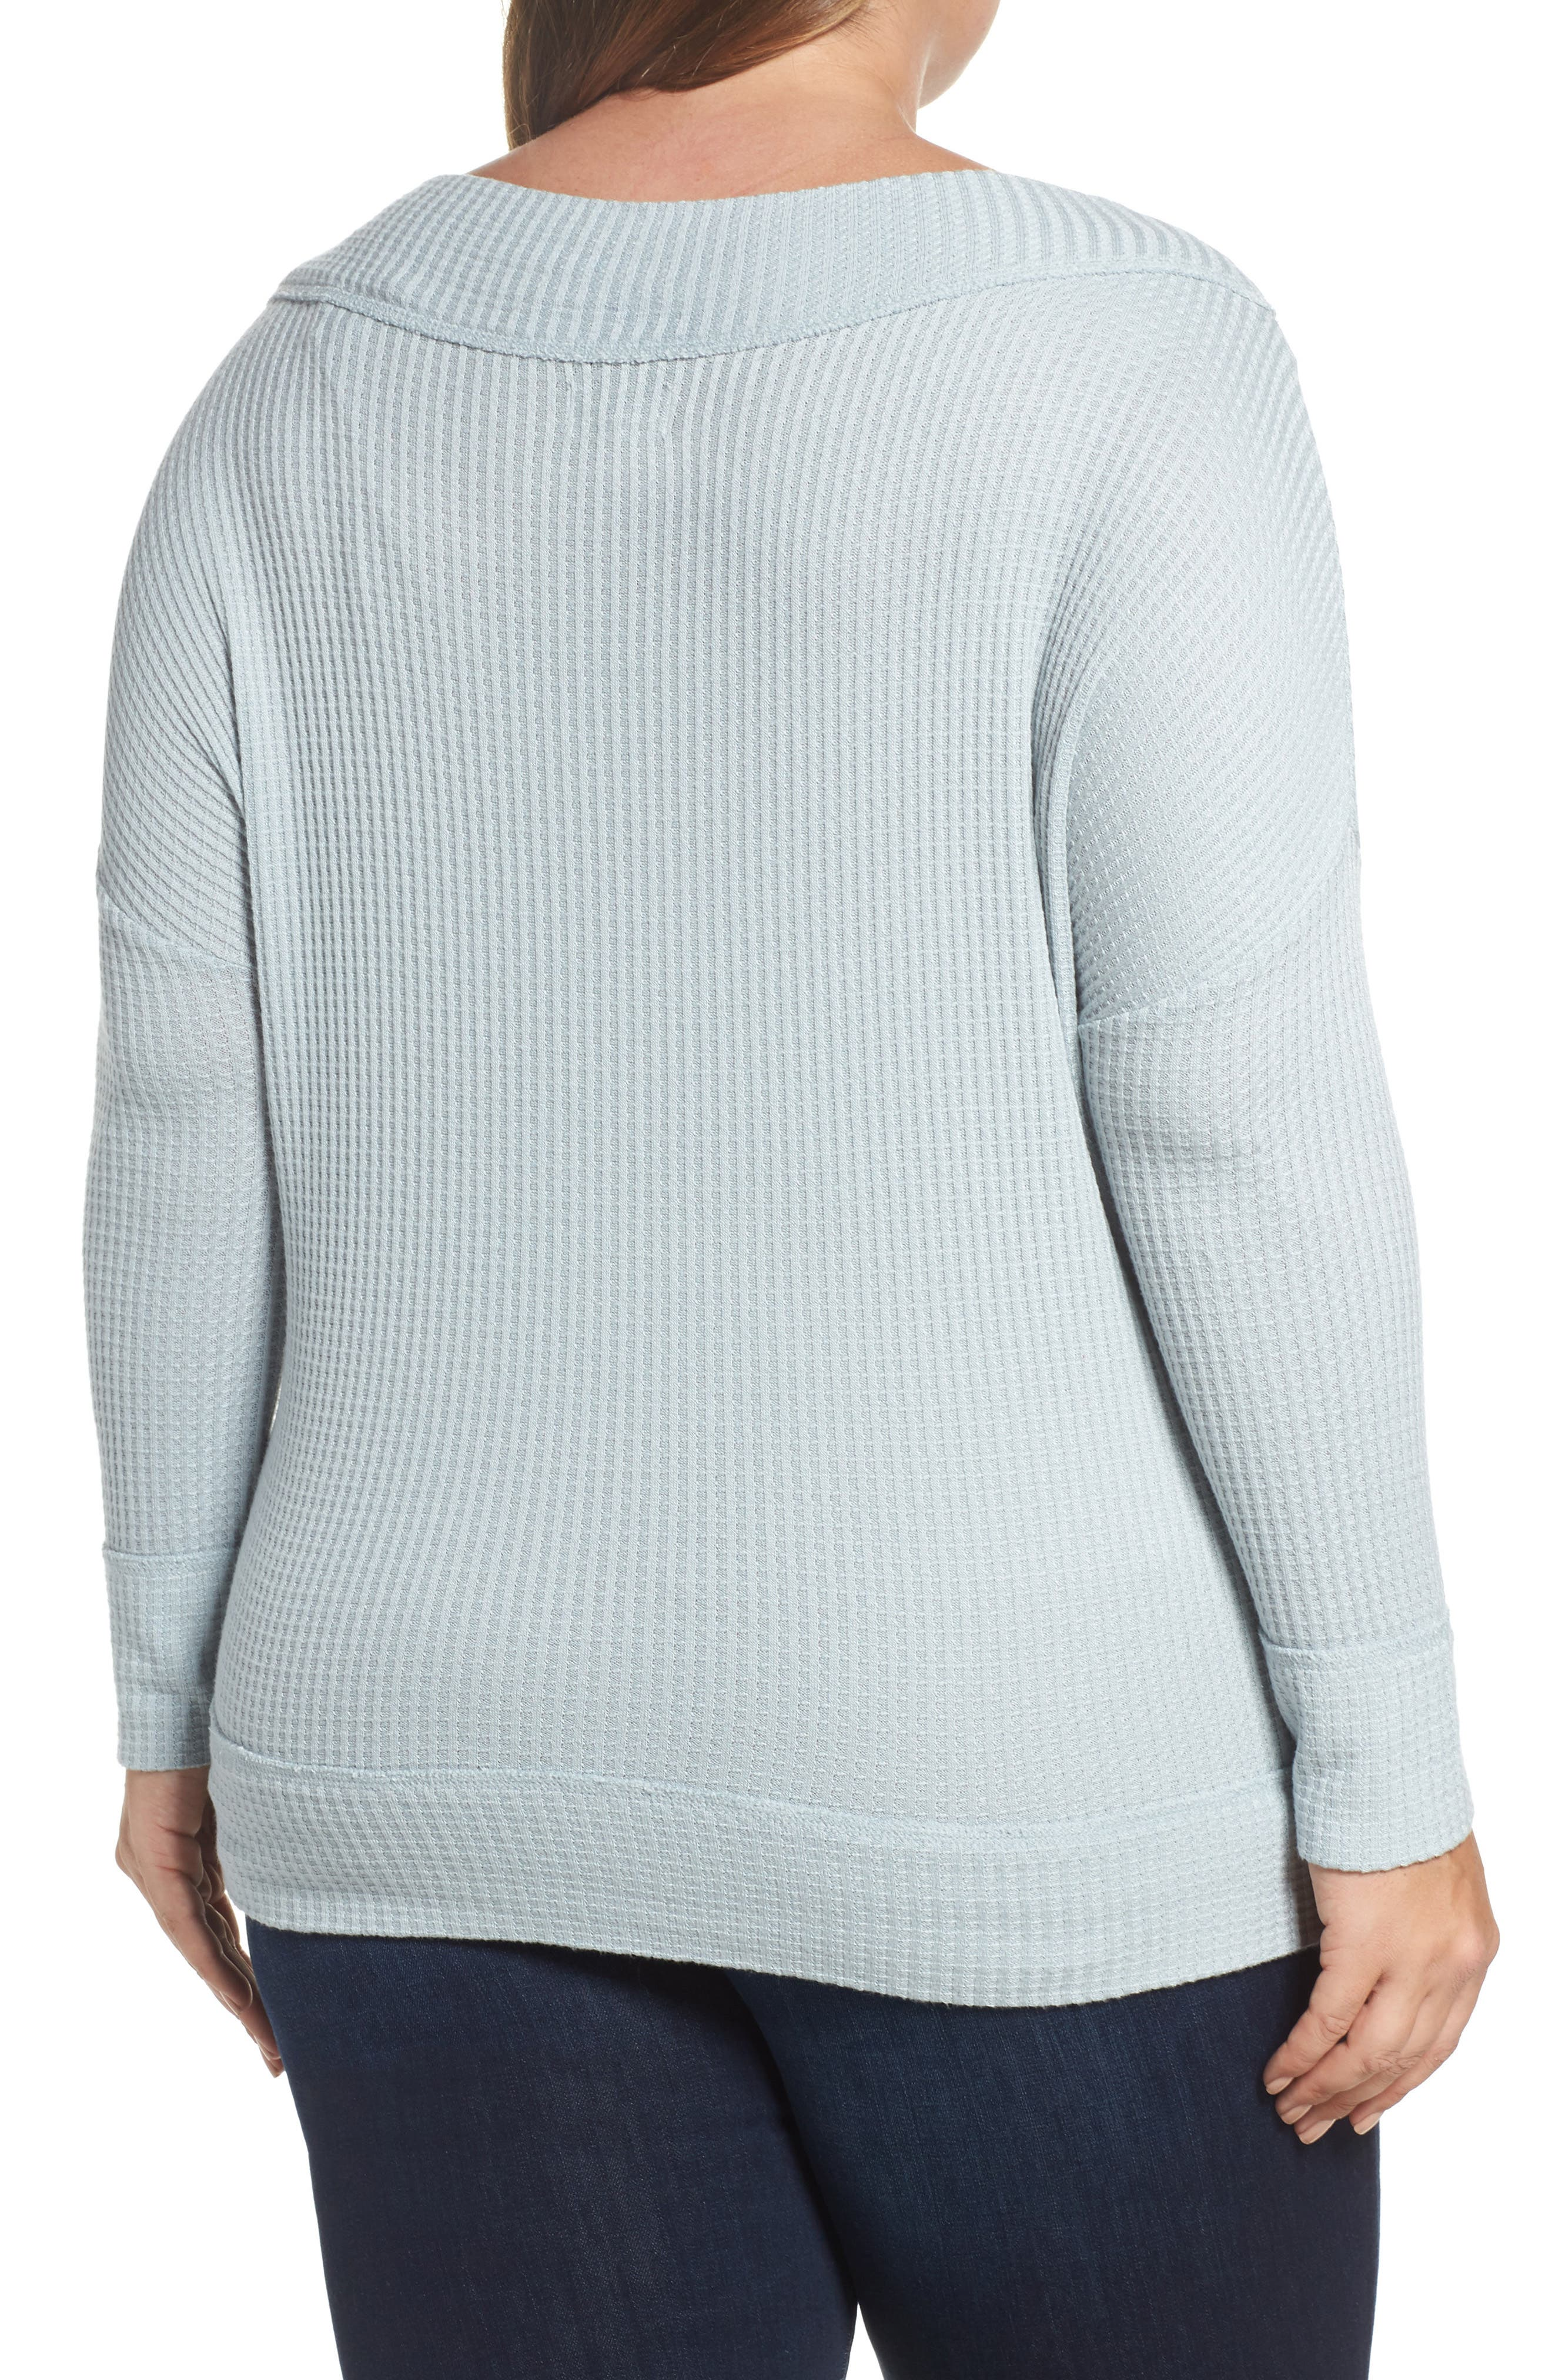 Waffle Thermal Top,                             Alternate thumbnail 2, color,                             430